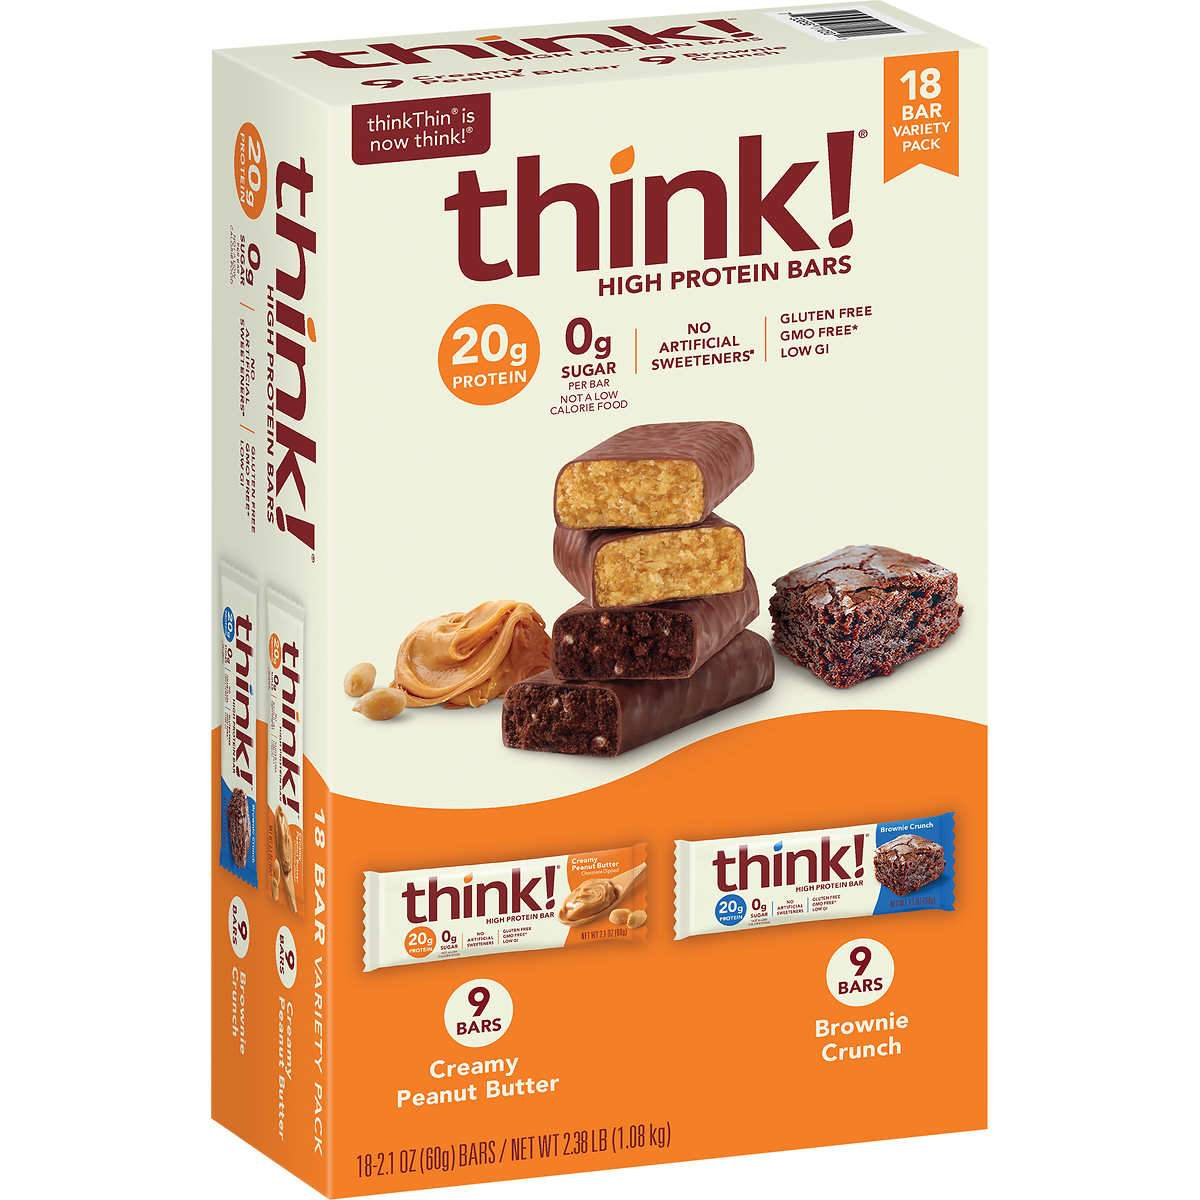 thinkThin High Protein Bars Meltable thinkThin Variety 2.1 Oz-18 Count (Creamy Peanut Butter & Brownie Crunch)